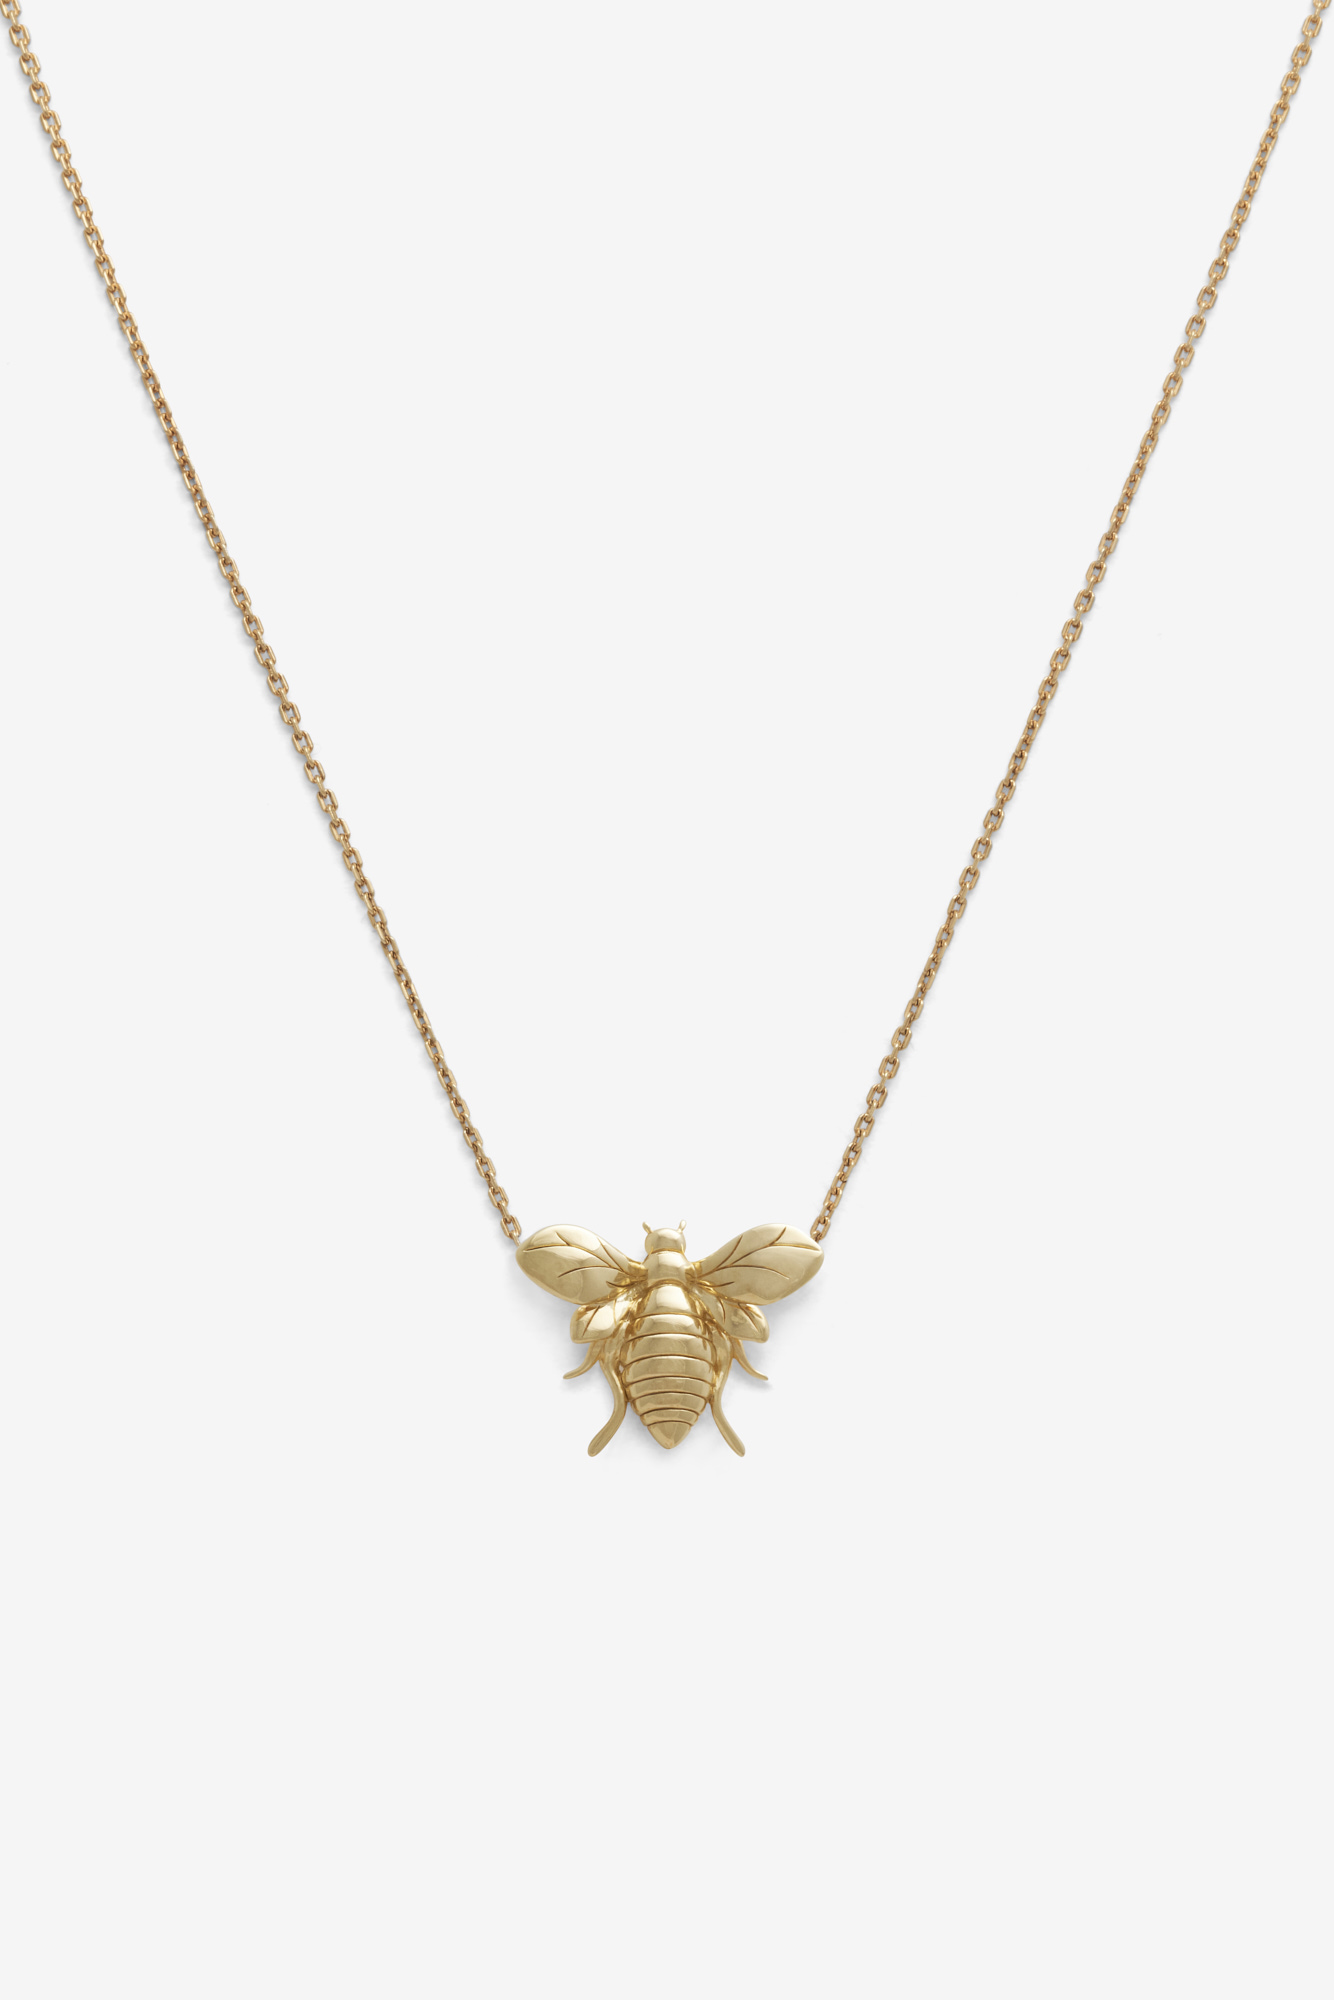 19-03-5-1-002-113-10_Bee Necklace_Gold Plated_02